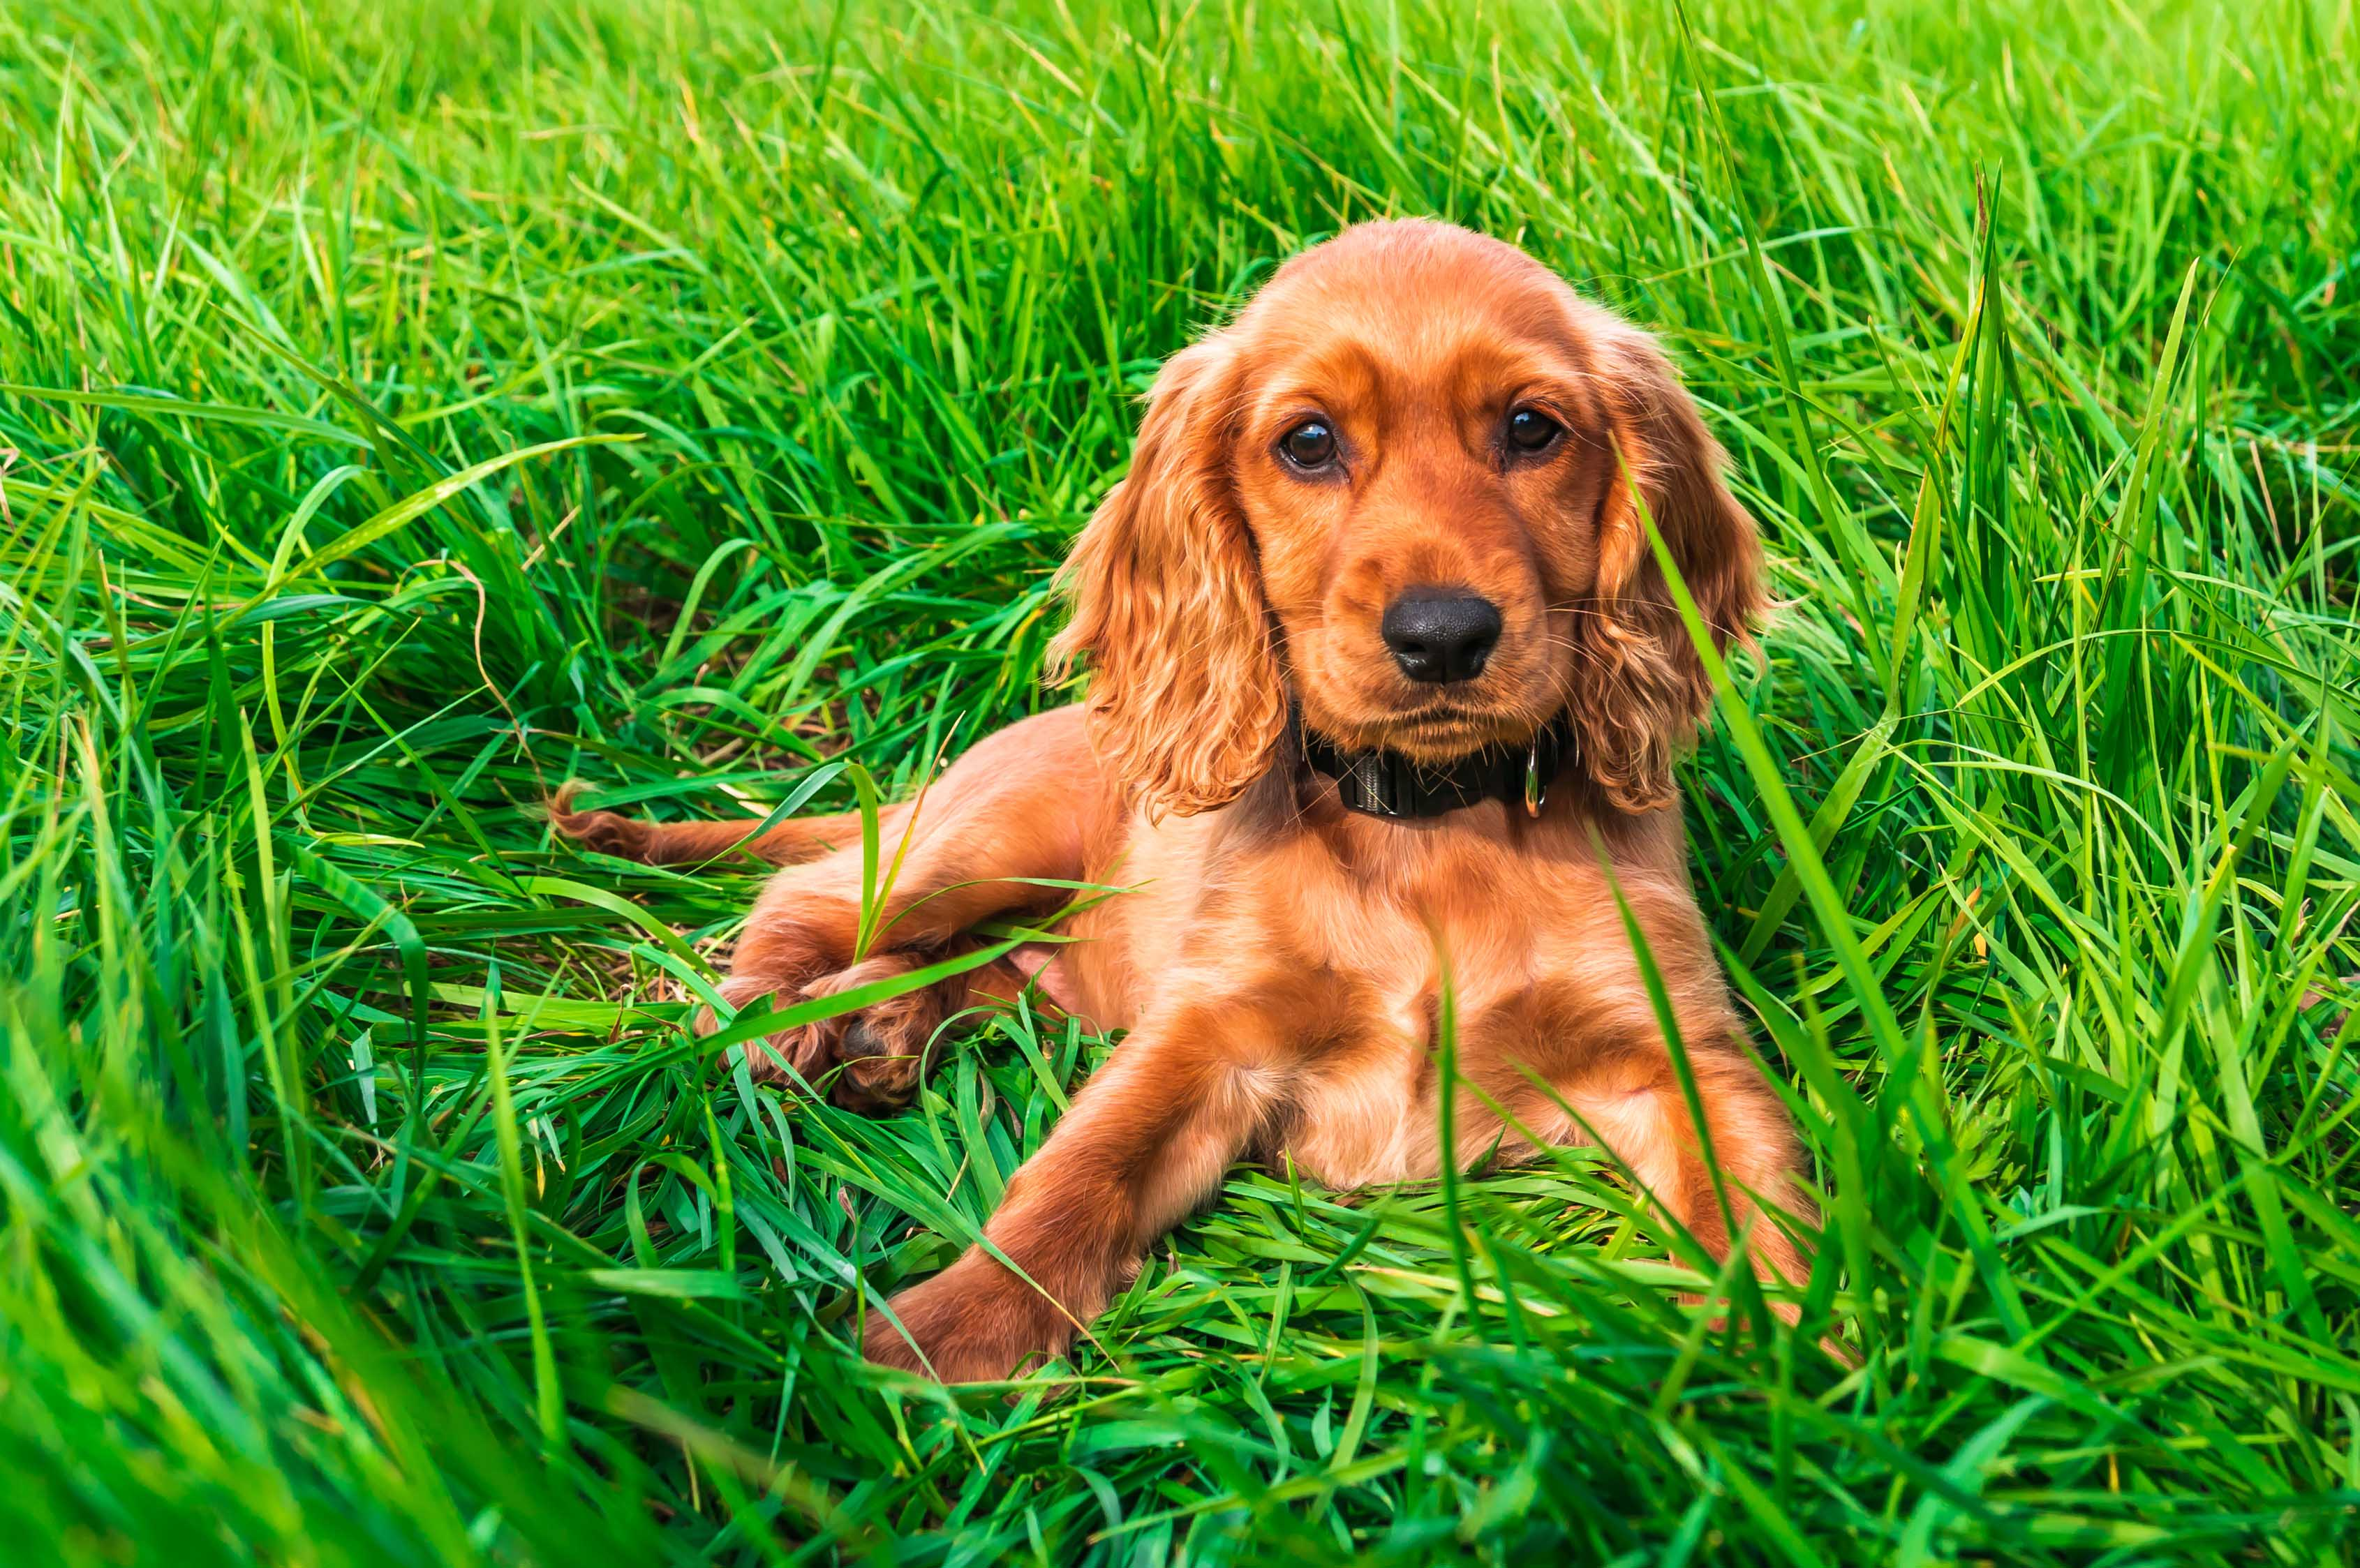 English cocker spaniel puppy lying on the green grass